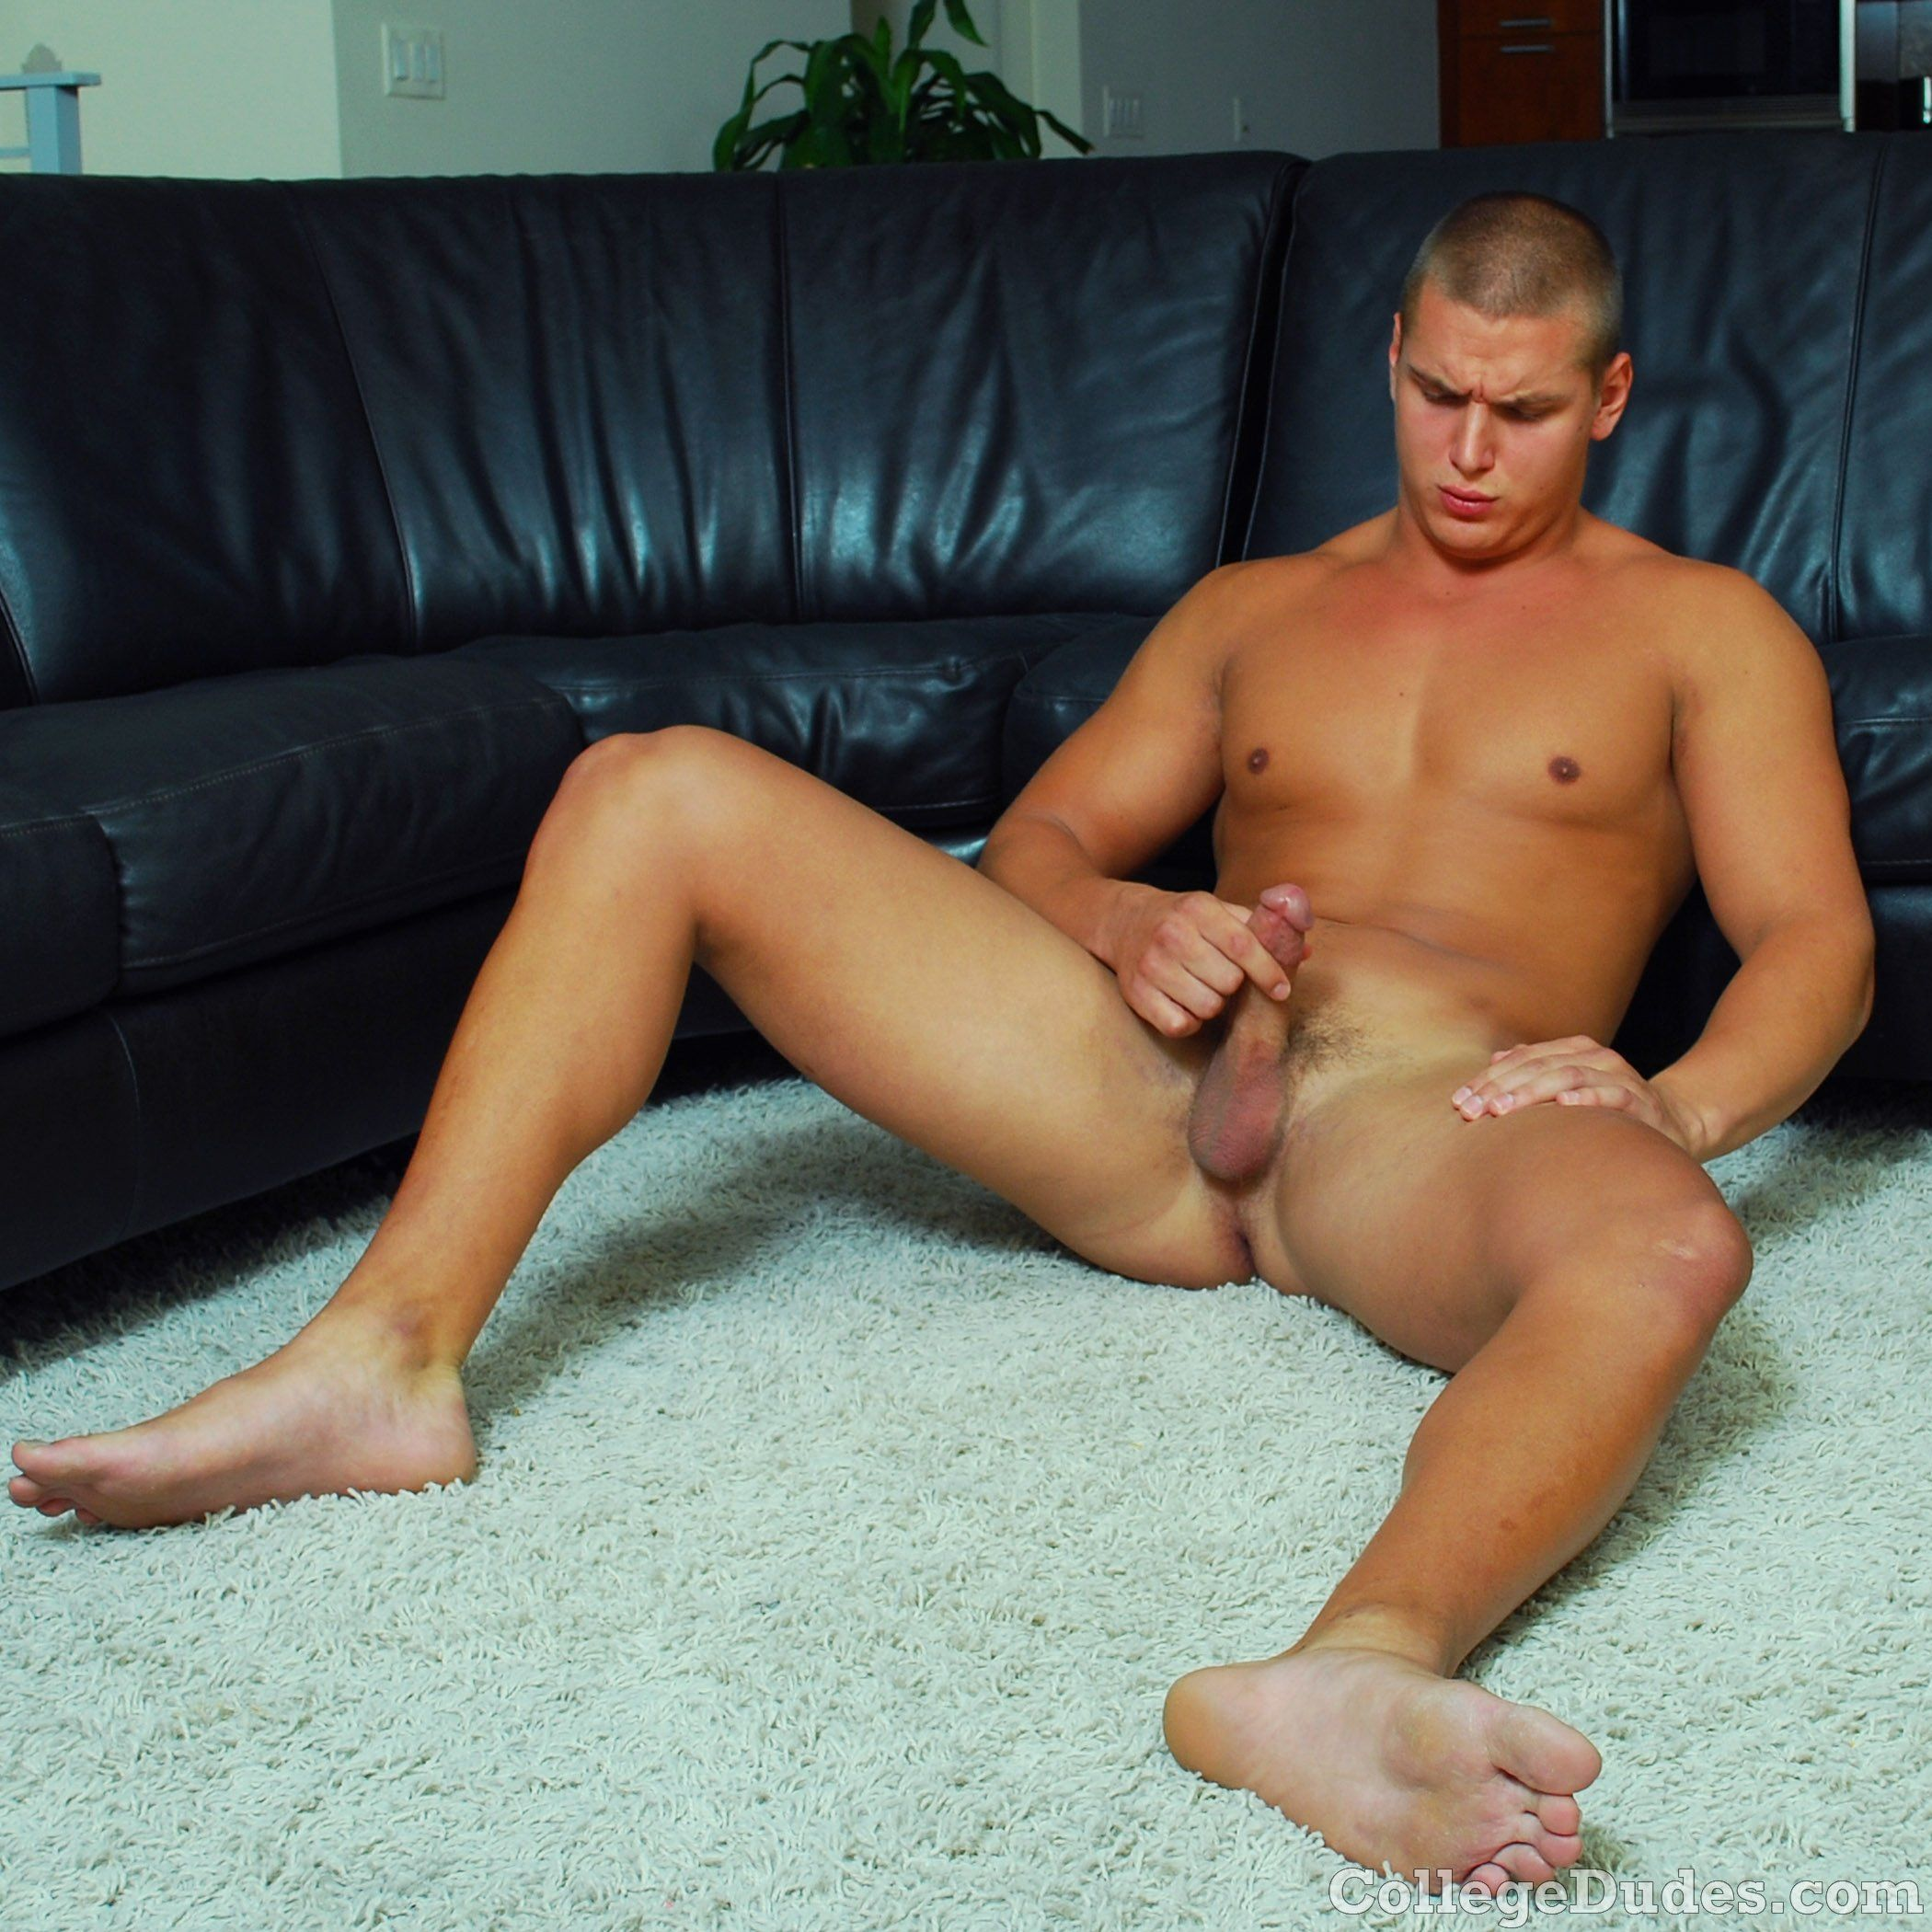 scandal! think, that twink getting his ass fucked by a mature stud help you? apologise, but